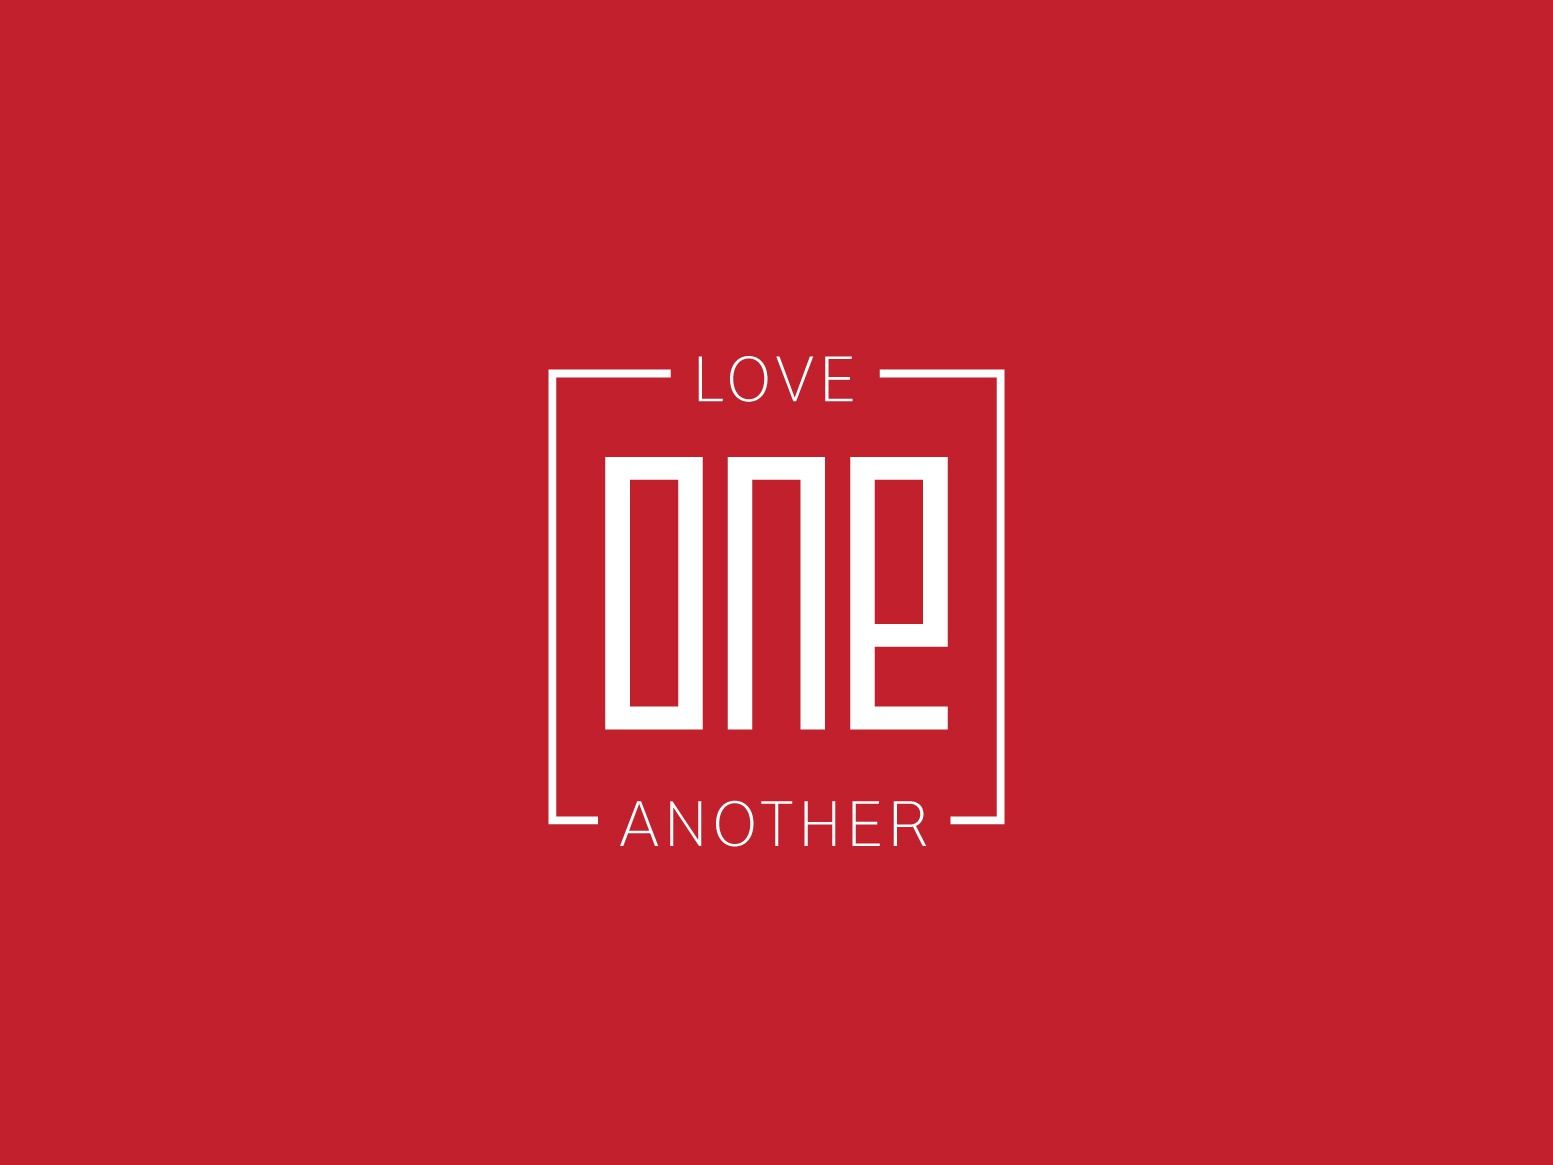 Love One Another v8 option 1 encouragement love one another love christian lettering typography type